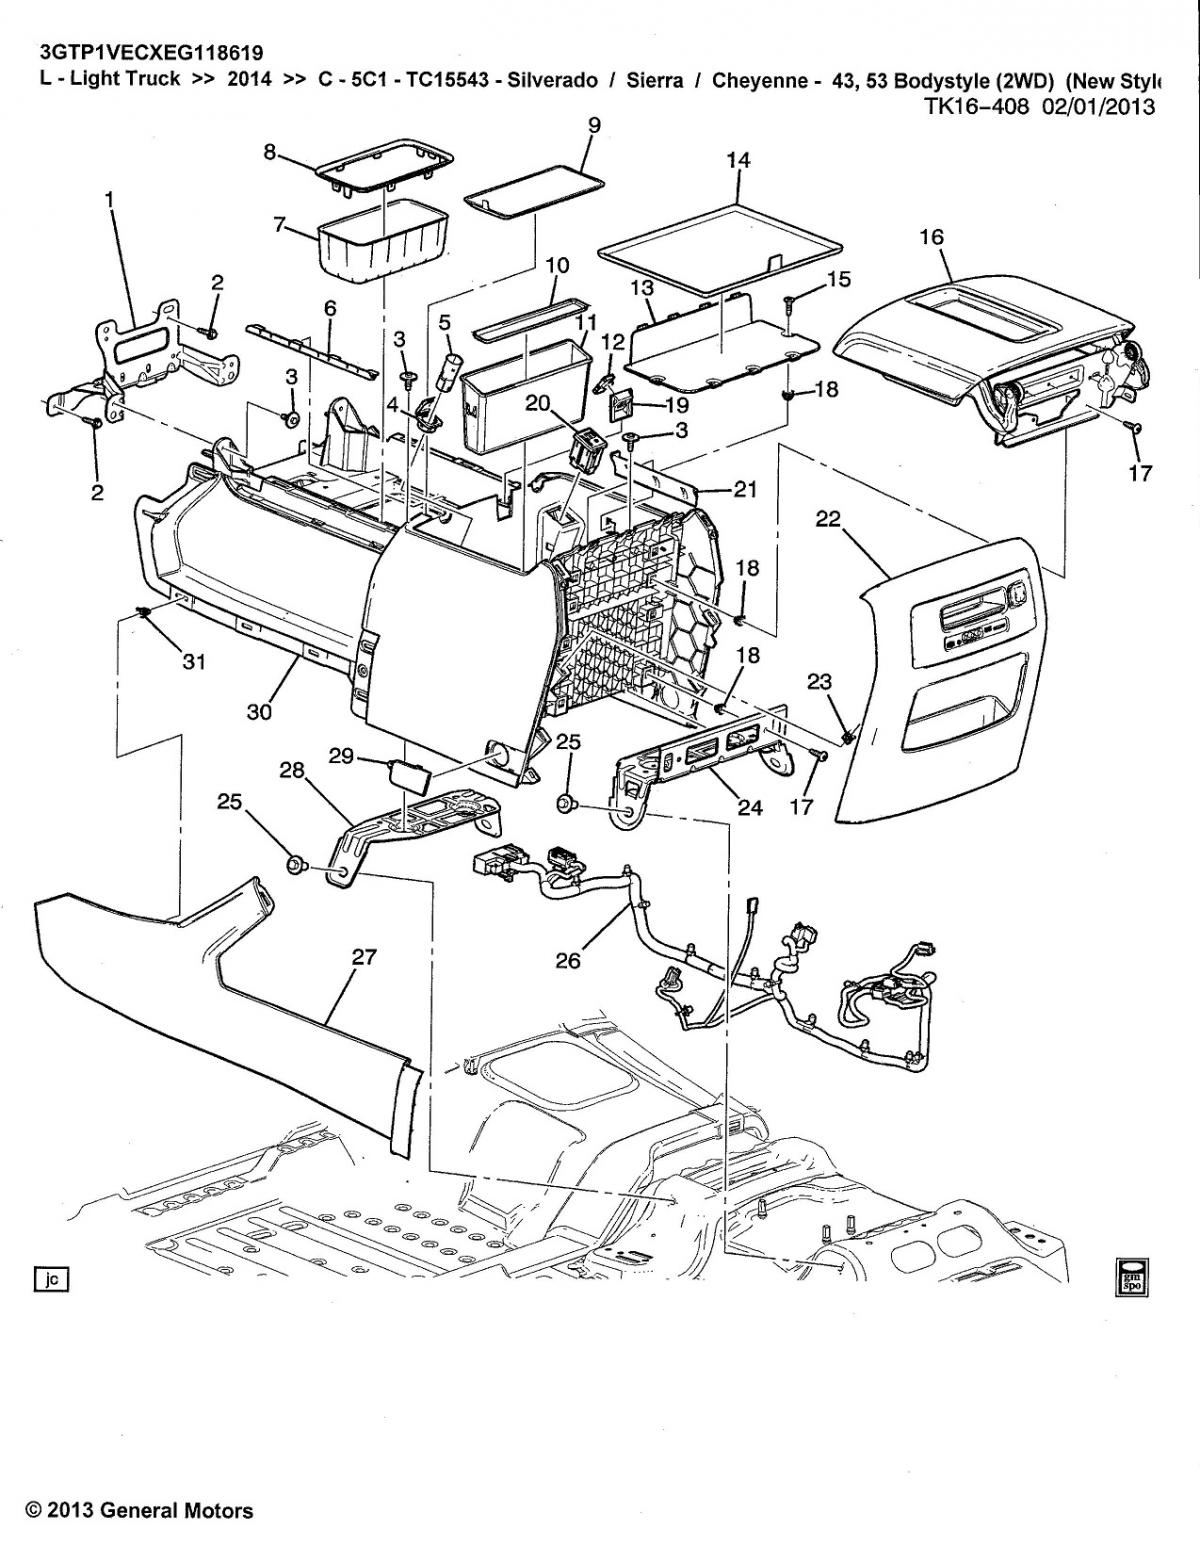 Chevy Silverado Parts Diagram